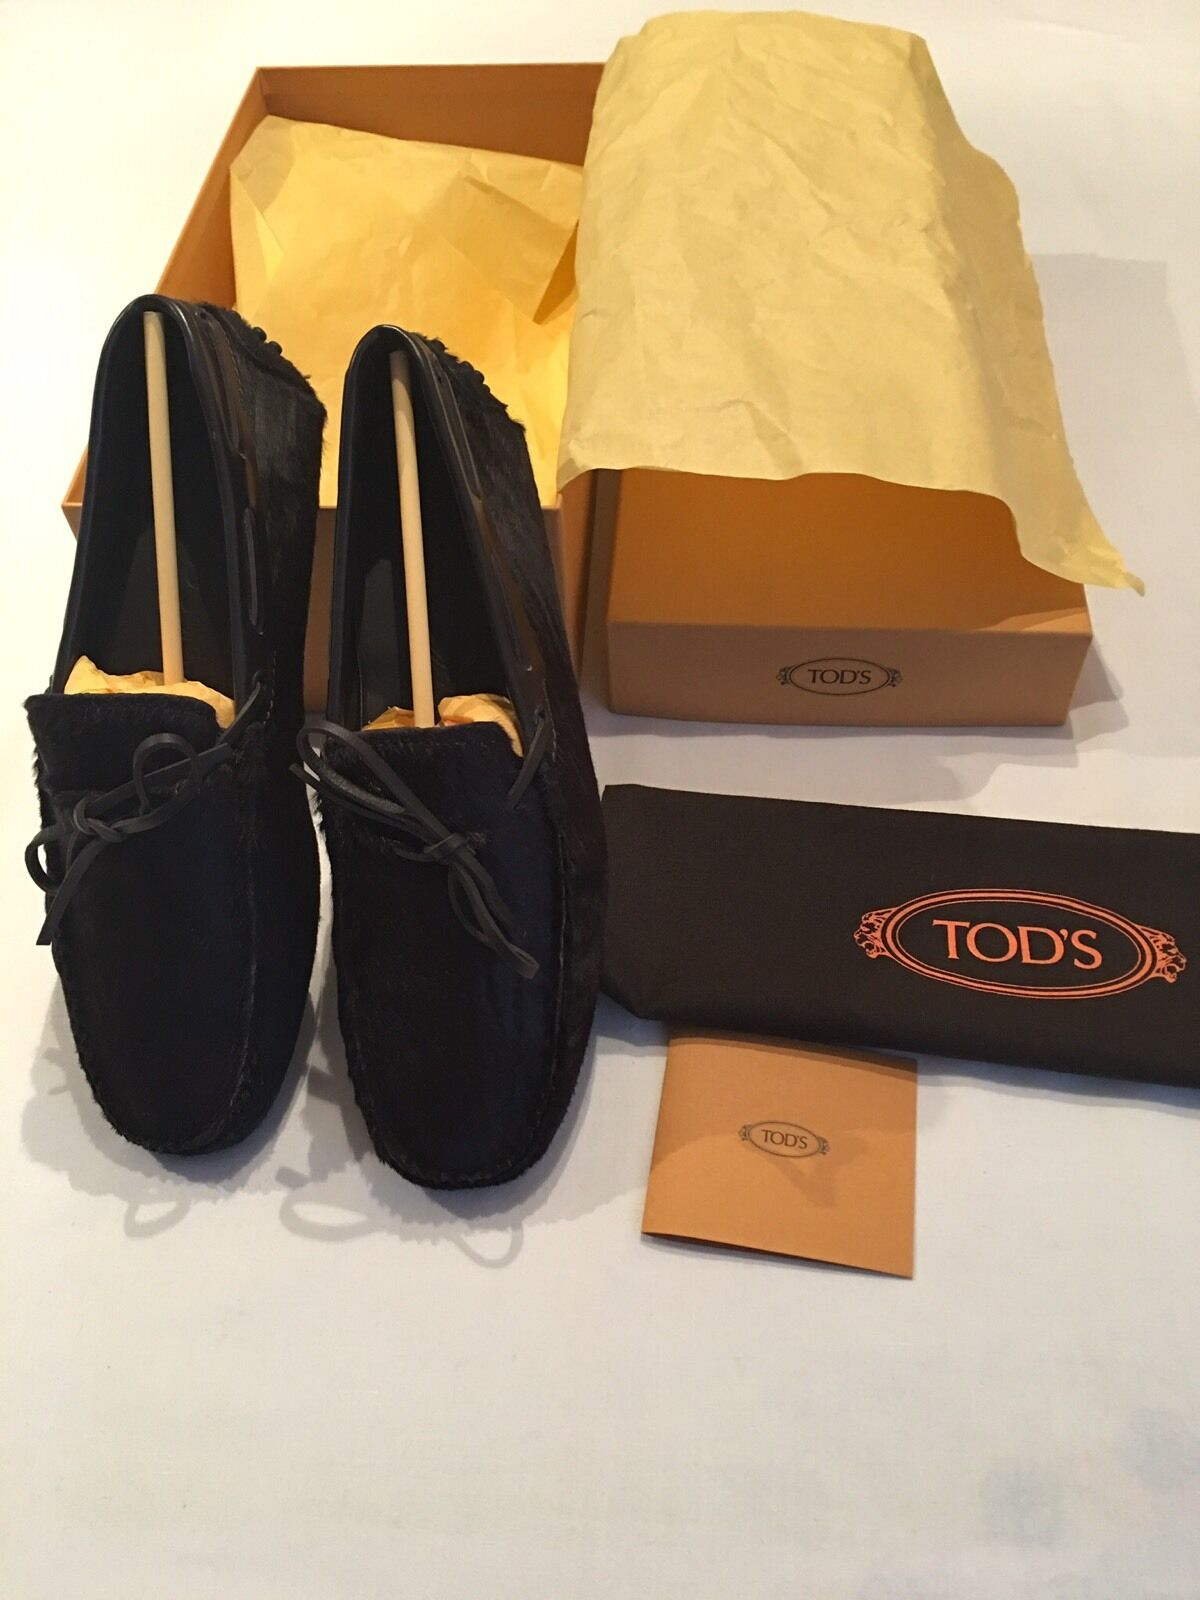 Tod's Mocassini 6 Loafer In Horse Cavallino 6 Mocassini Uomo Casual Chic 0612e5